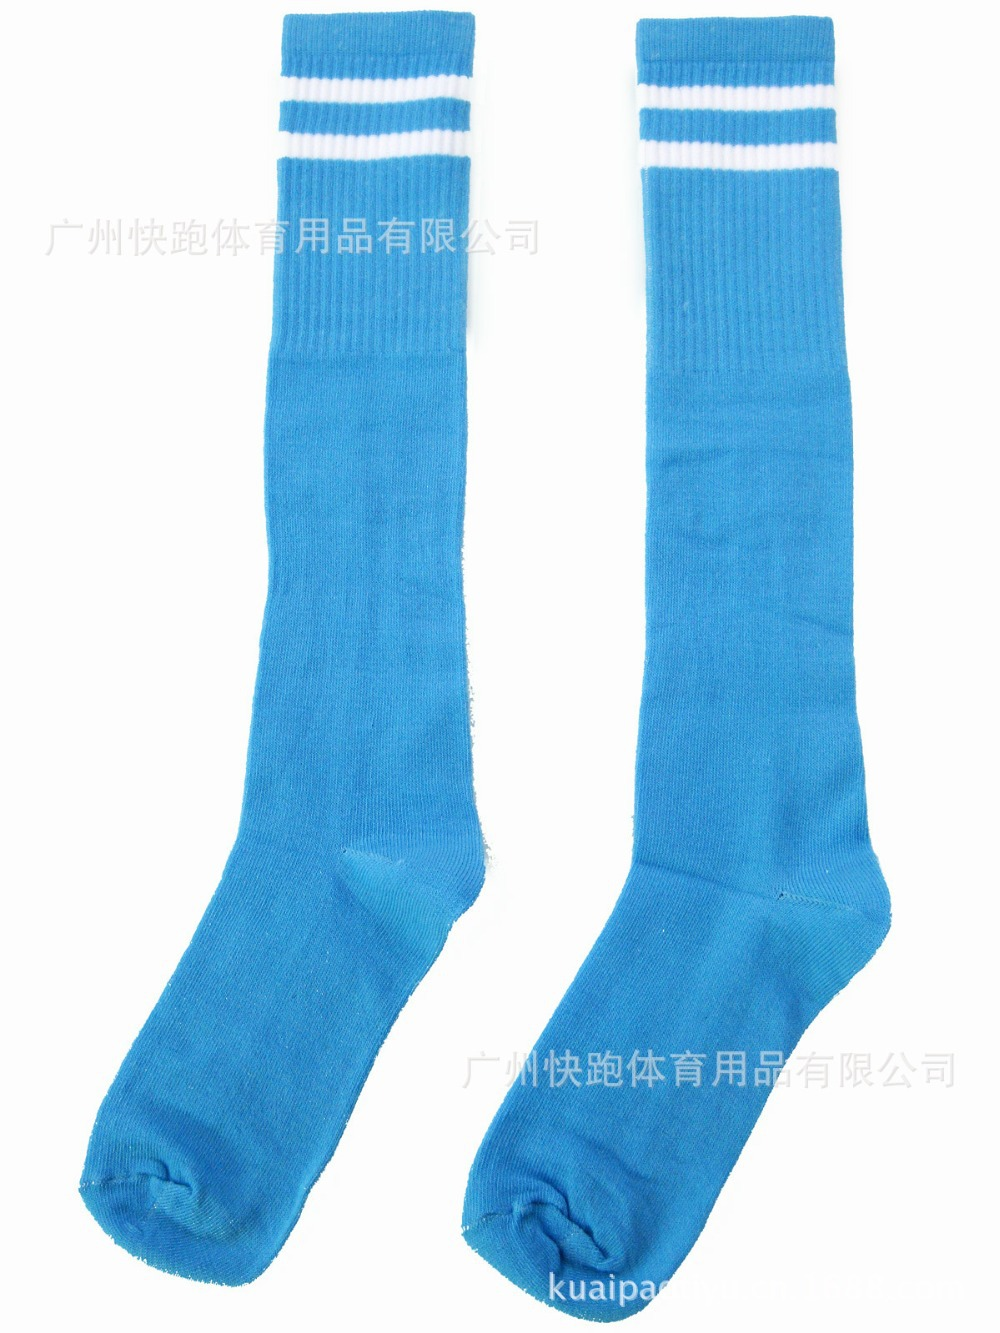 a311641c7 Buy Meia 7/8 Boys Blue Calcetines Kids Stripe Trusox Medias Soccer Socks  Children Knee High Futebol in Cheap Price on Alibaba.com